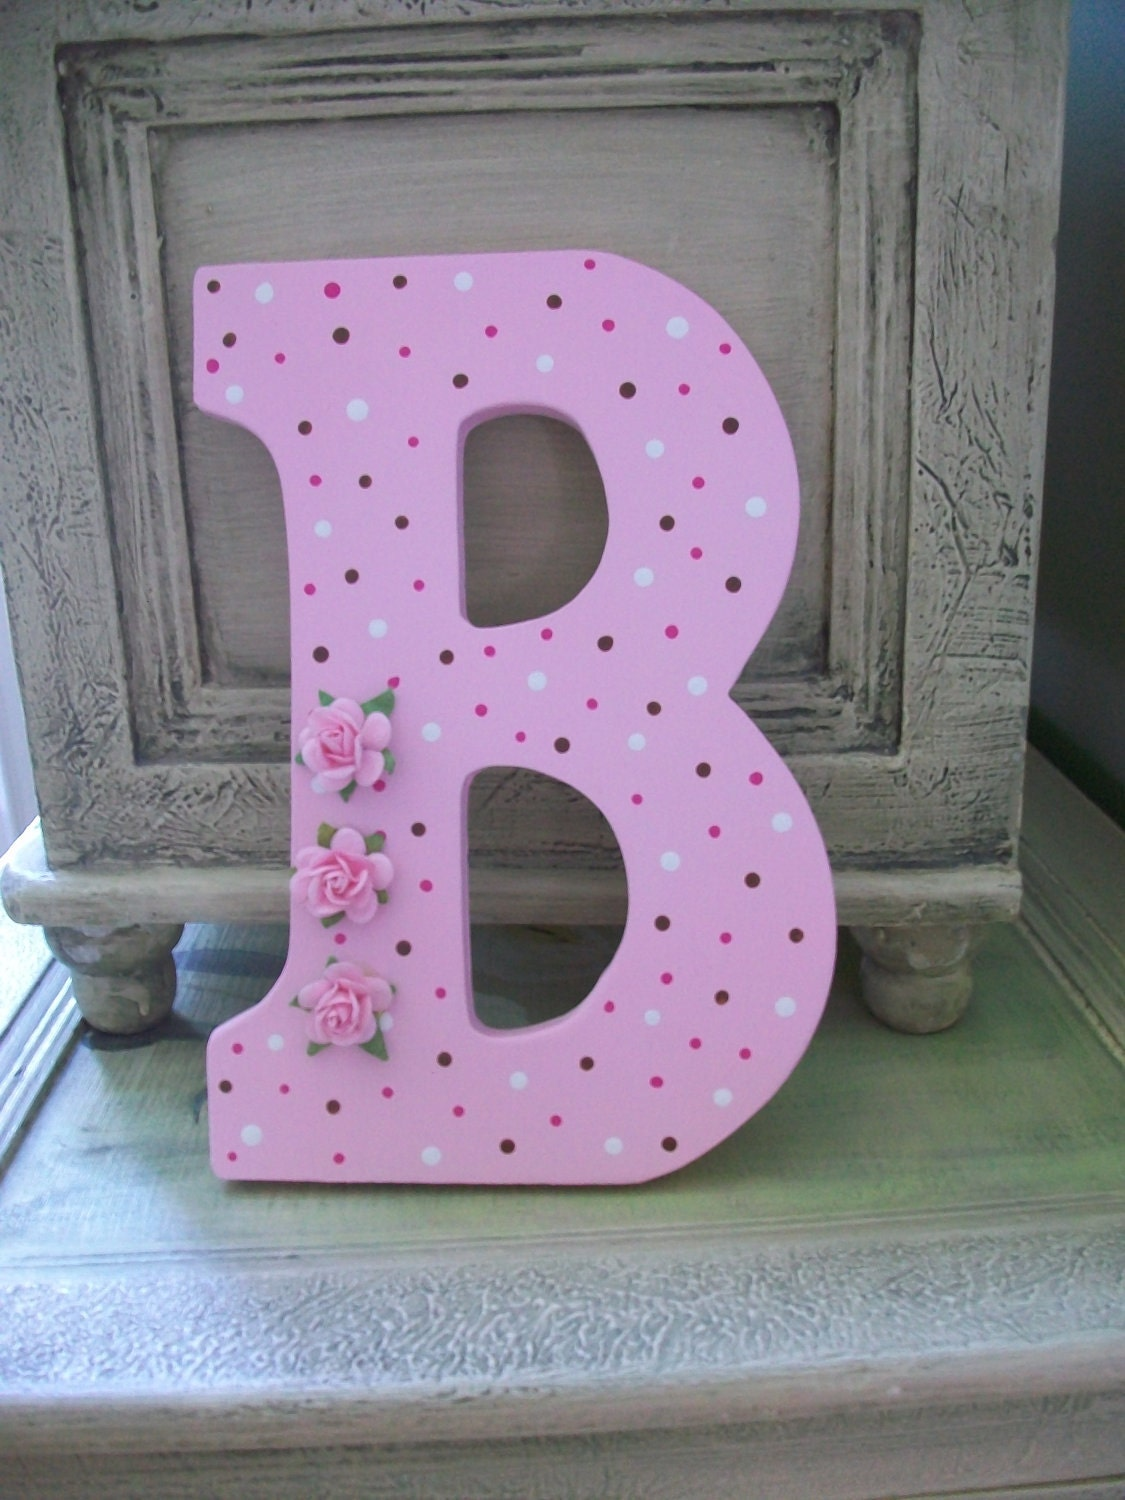 The Letter B Wall Decor : Baby girl pink shabby chic letter b wall decor by dippitydaisy